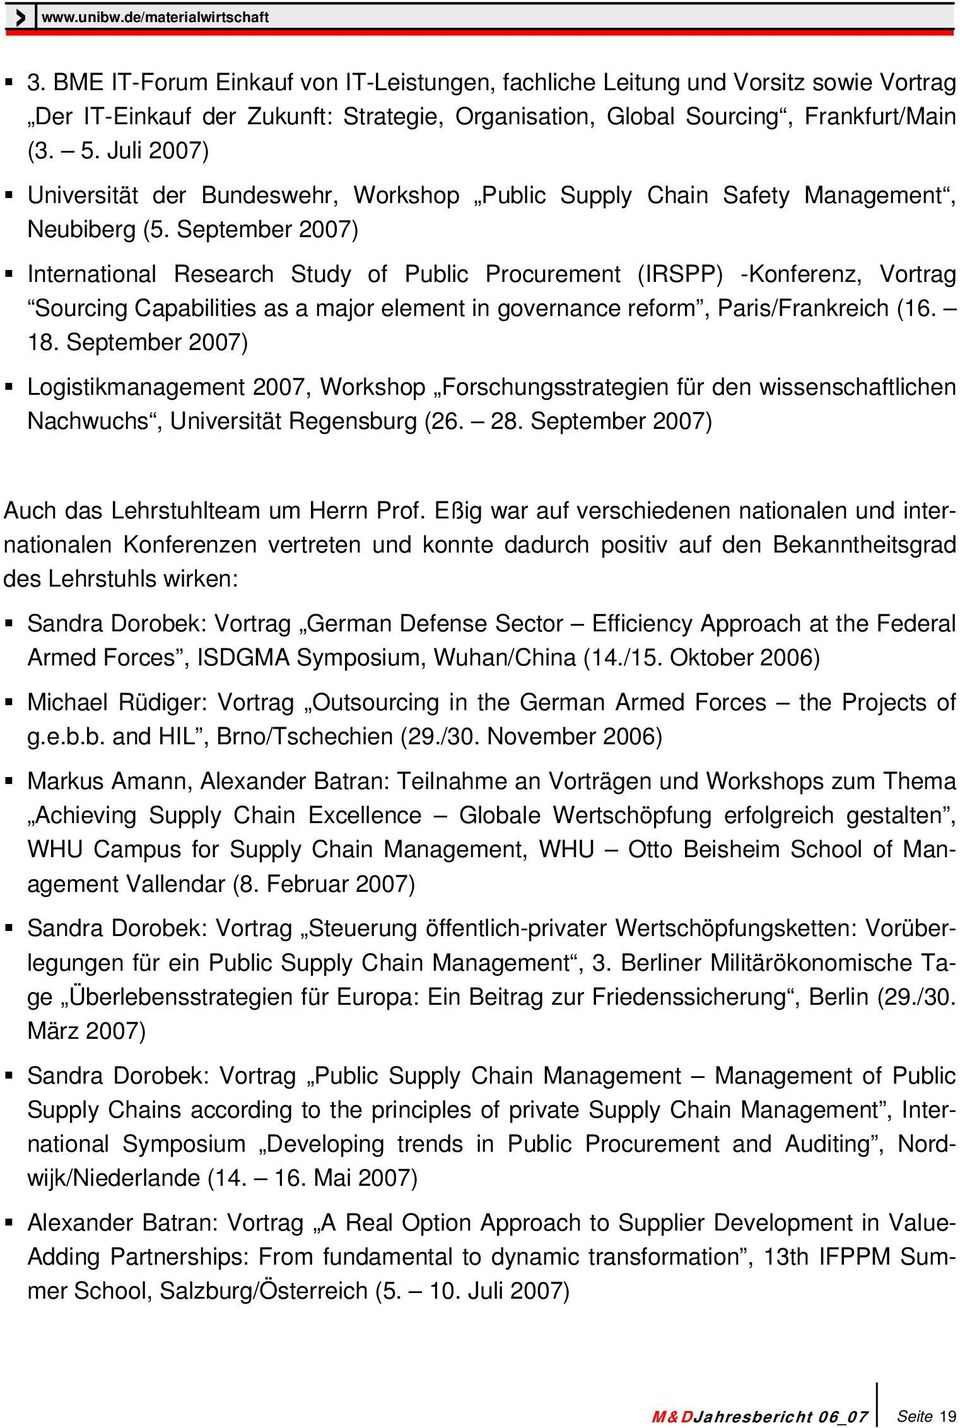 September 2007) International Research Study of Public Procurement (IRSPP) -Konferenz, Vortrag Sourcing Capabilities as a major element in governance reform, Paris/Frankreich (16. 18.